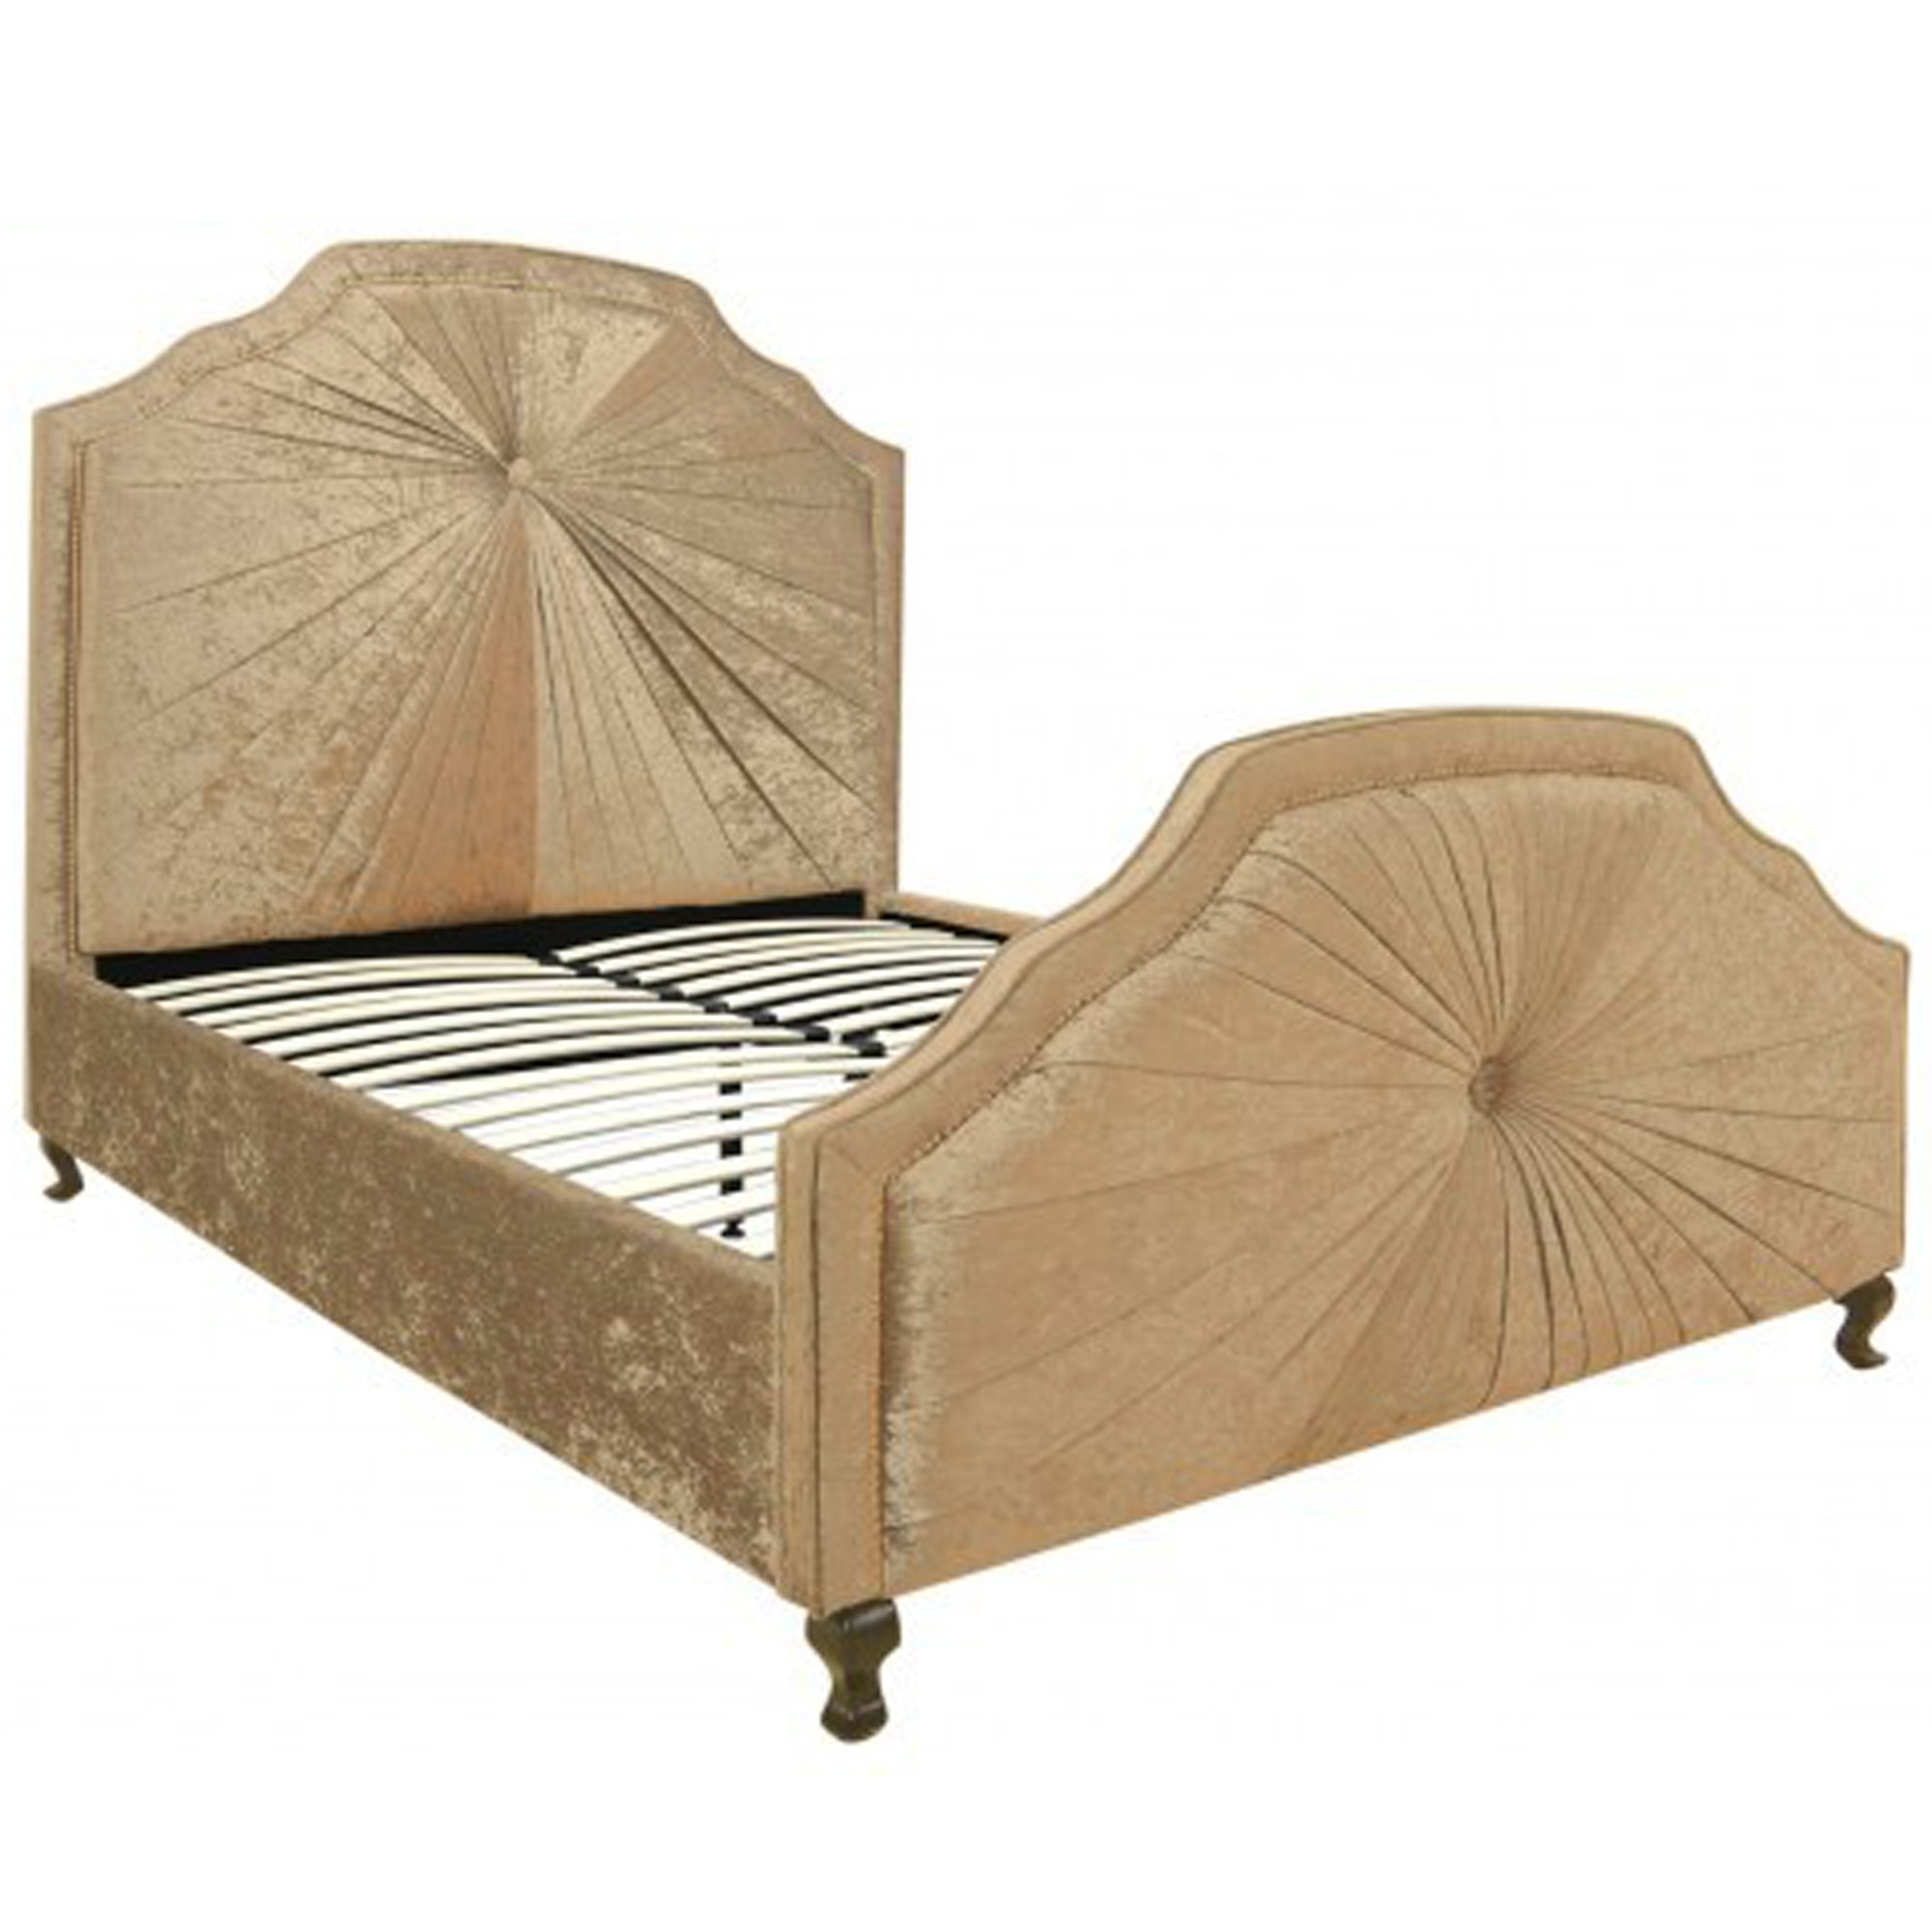 Picture of: Kingsize Aurora Gold Fabric Bed French Style Furniture Online Now